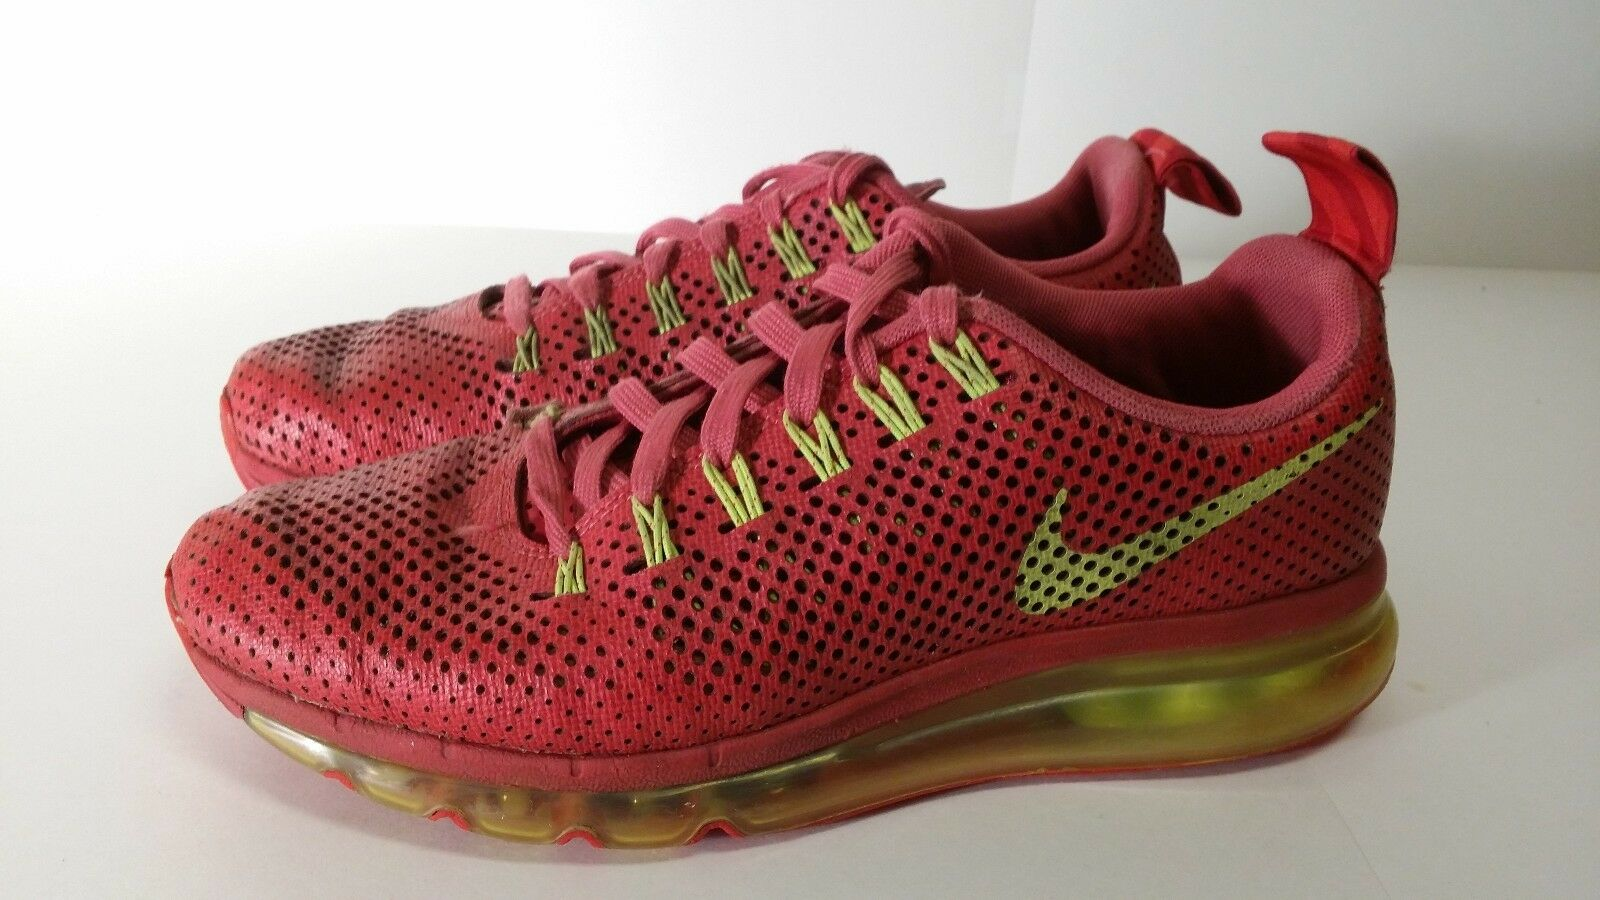 nike air max max air   proposition Rouge  volt chaussures de sport 631767-600 taille 7 3fc283